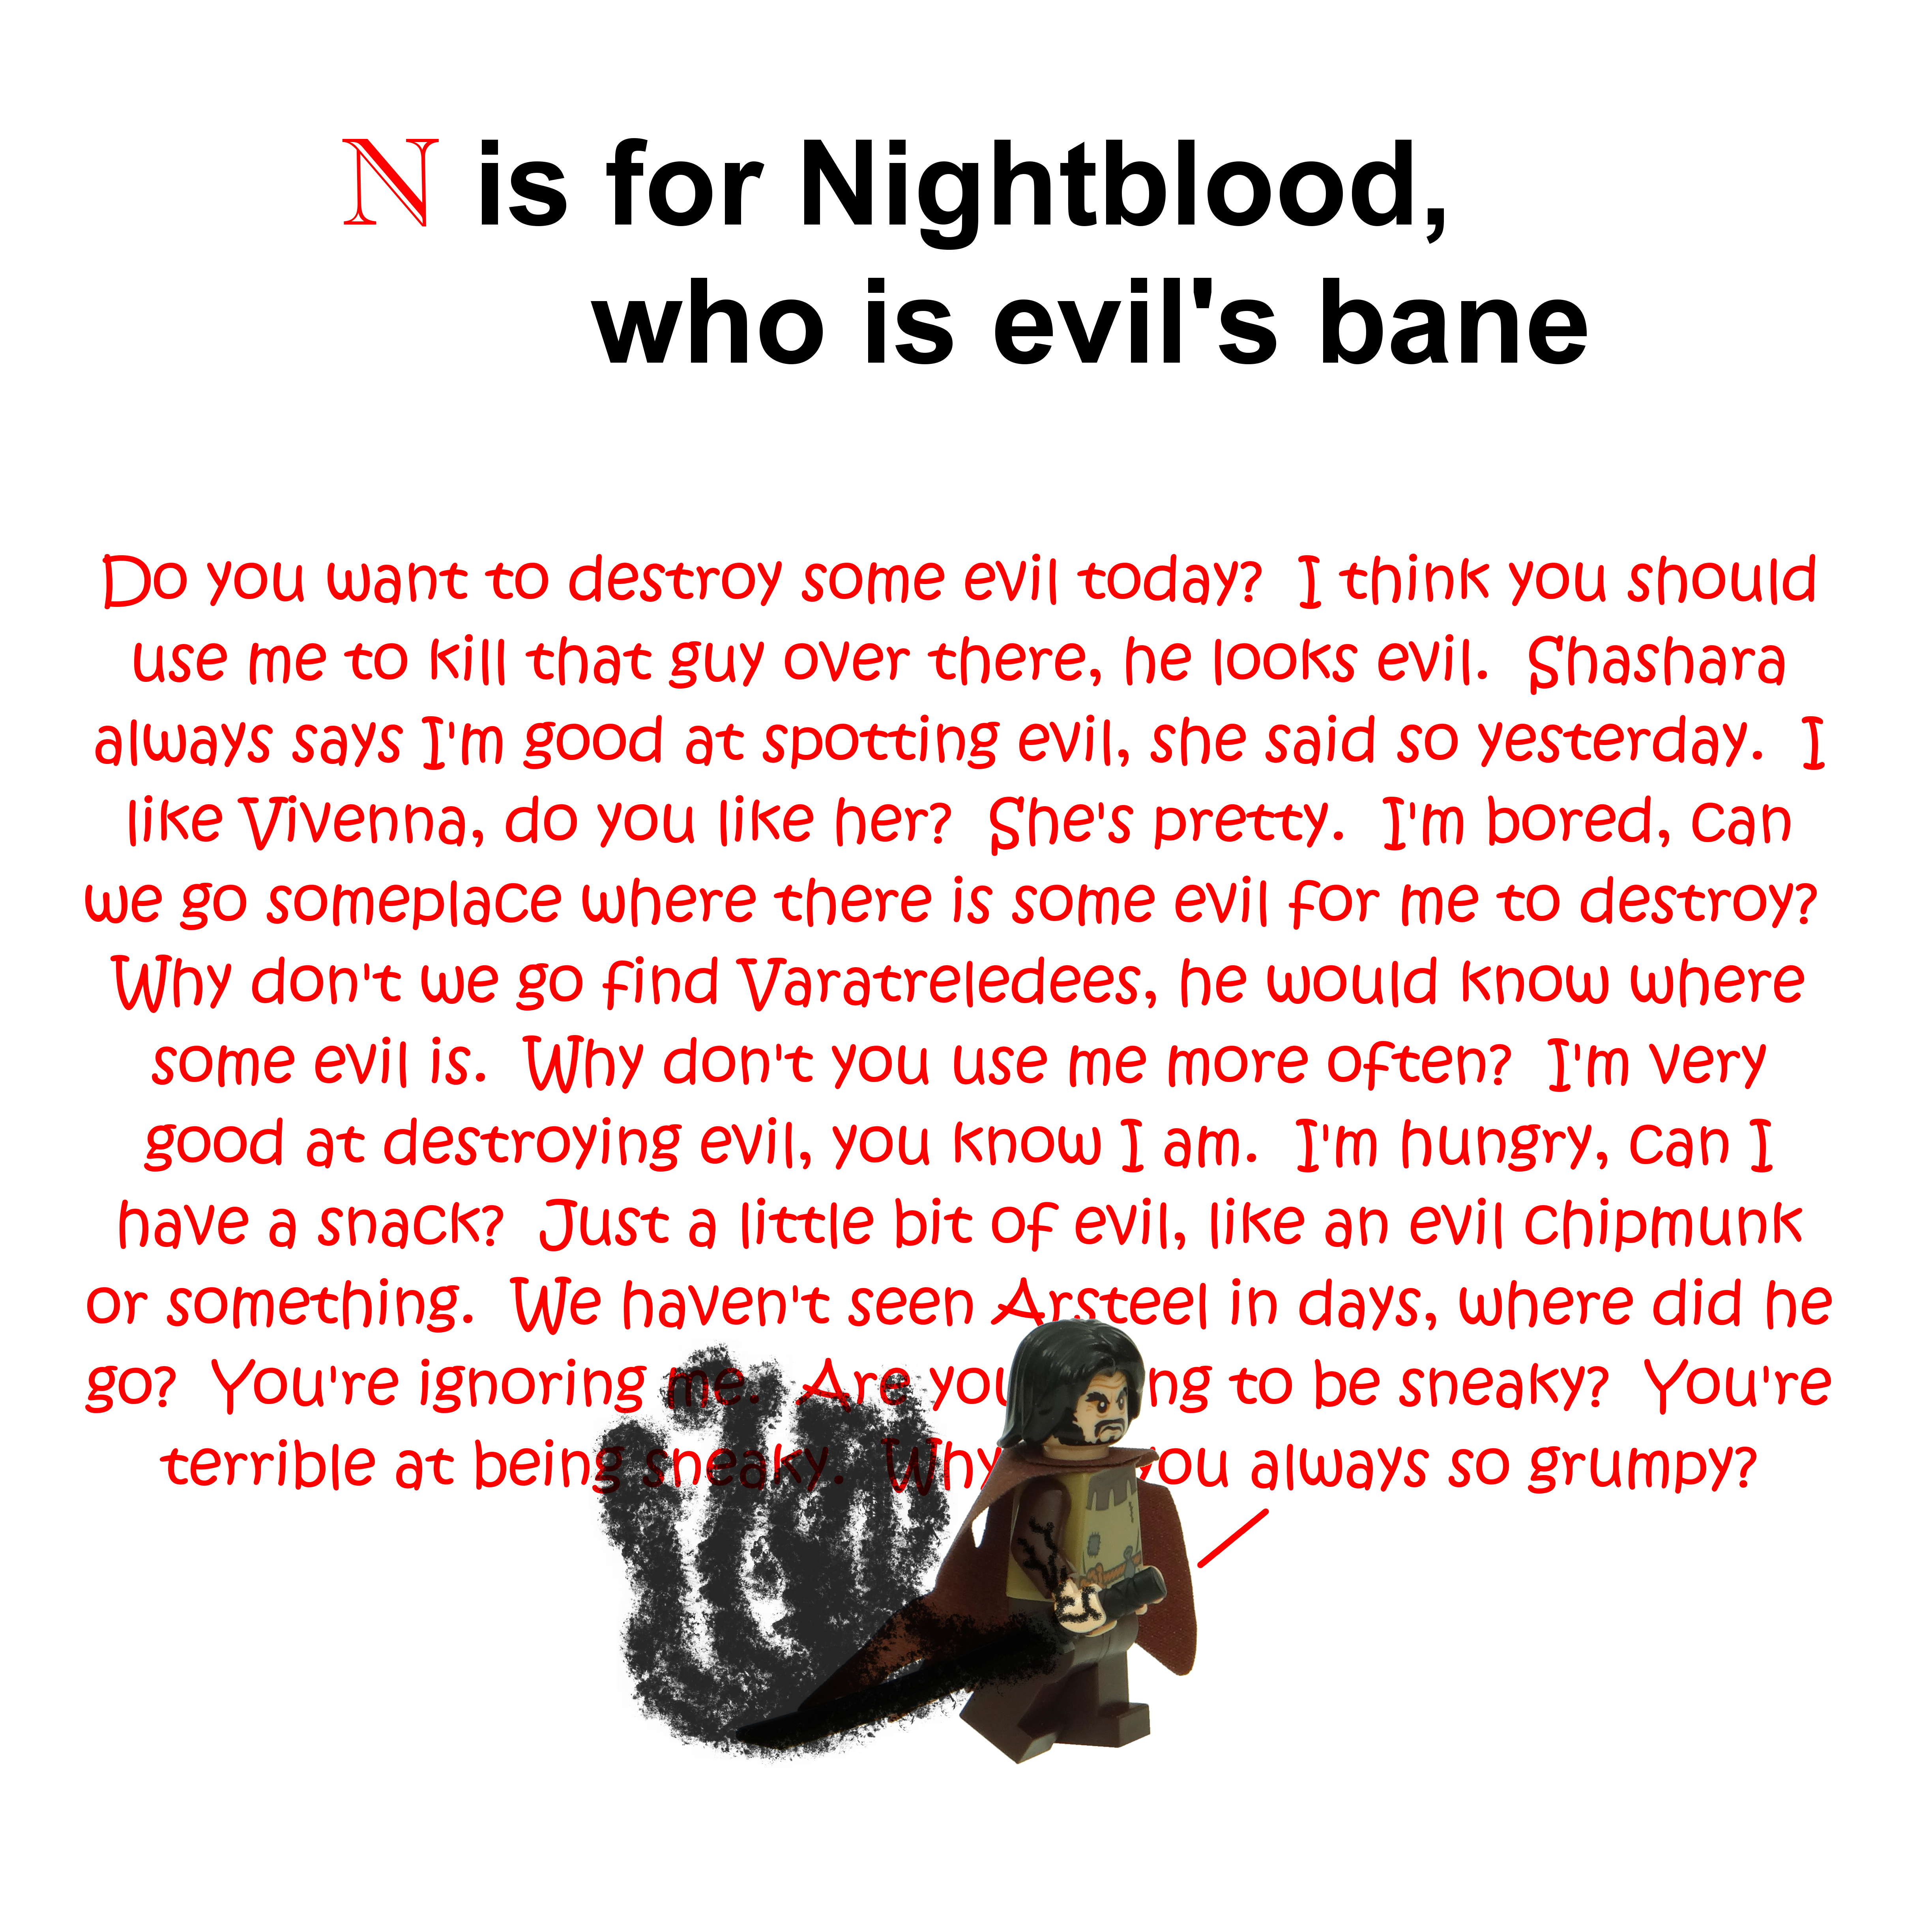 N-is-for-Nightblood